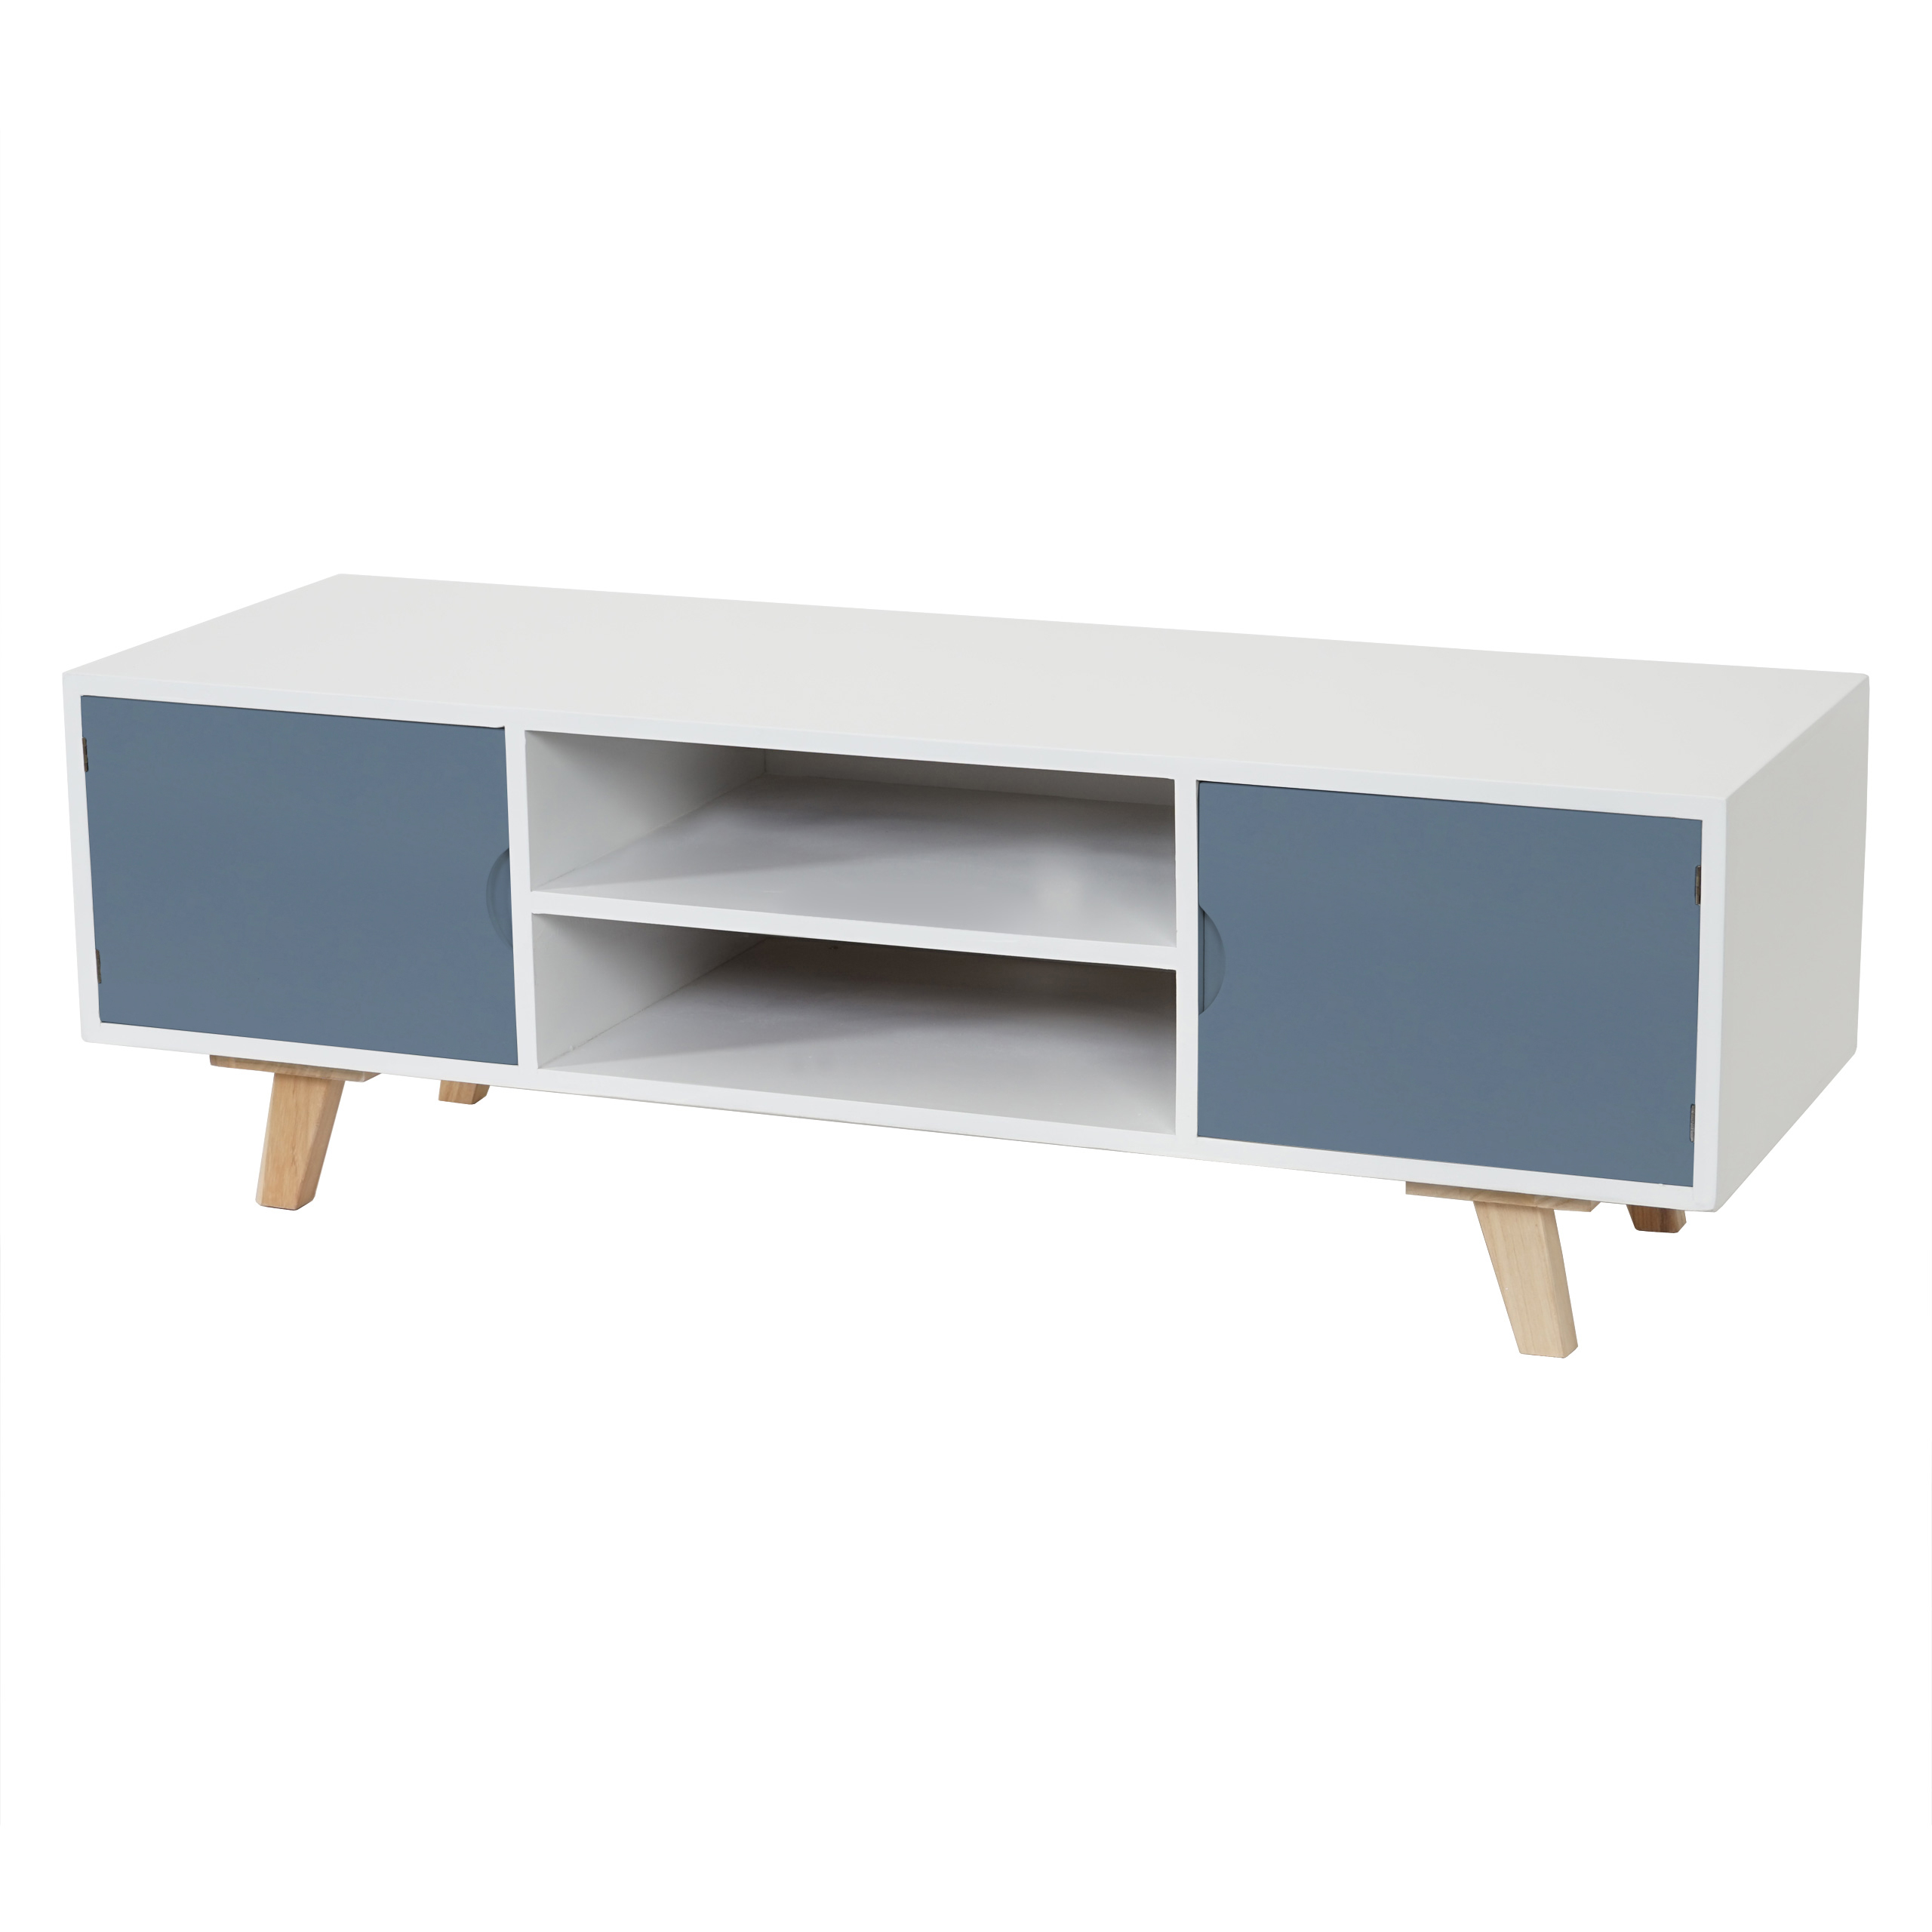 lowboard vaasa t256 tv rack fernsehtisch retro design 40x120x40cm blaue front ebay. Black Bedroom Furniture Sets. Home Design Ideas